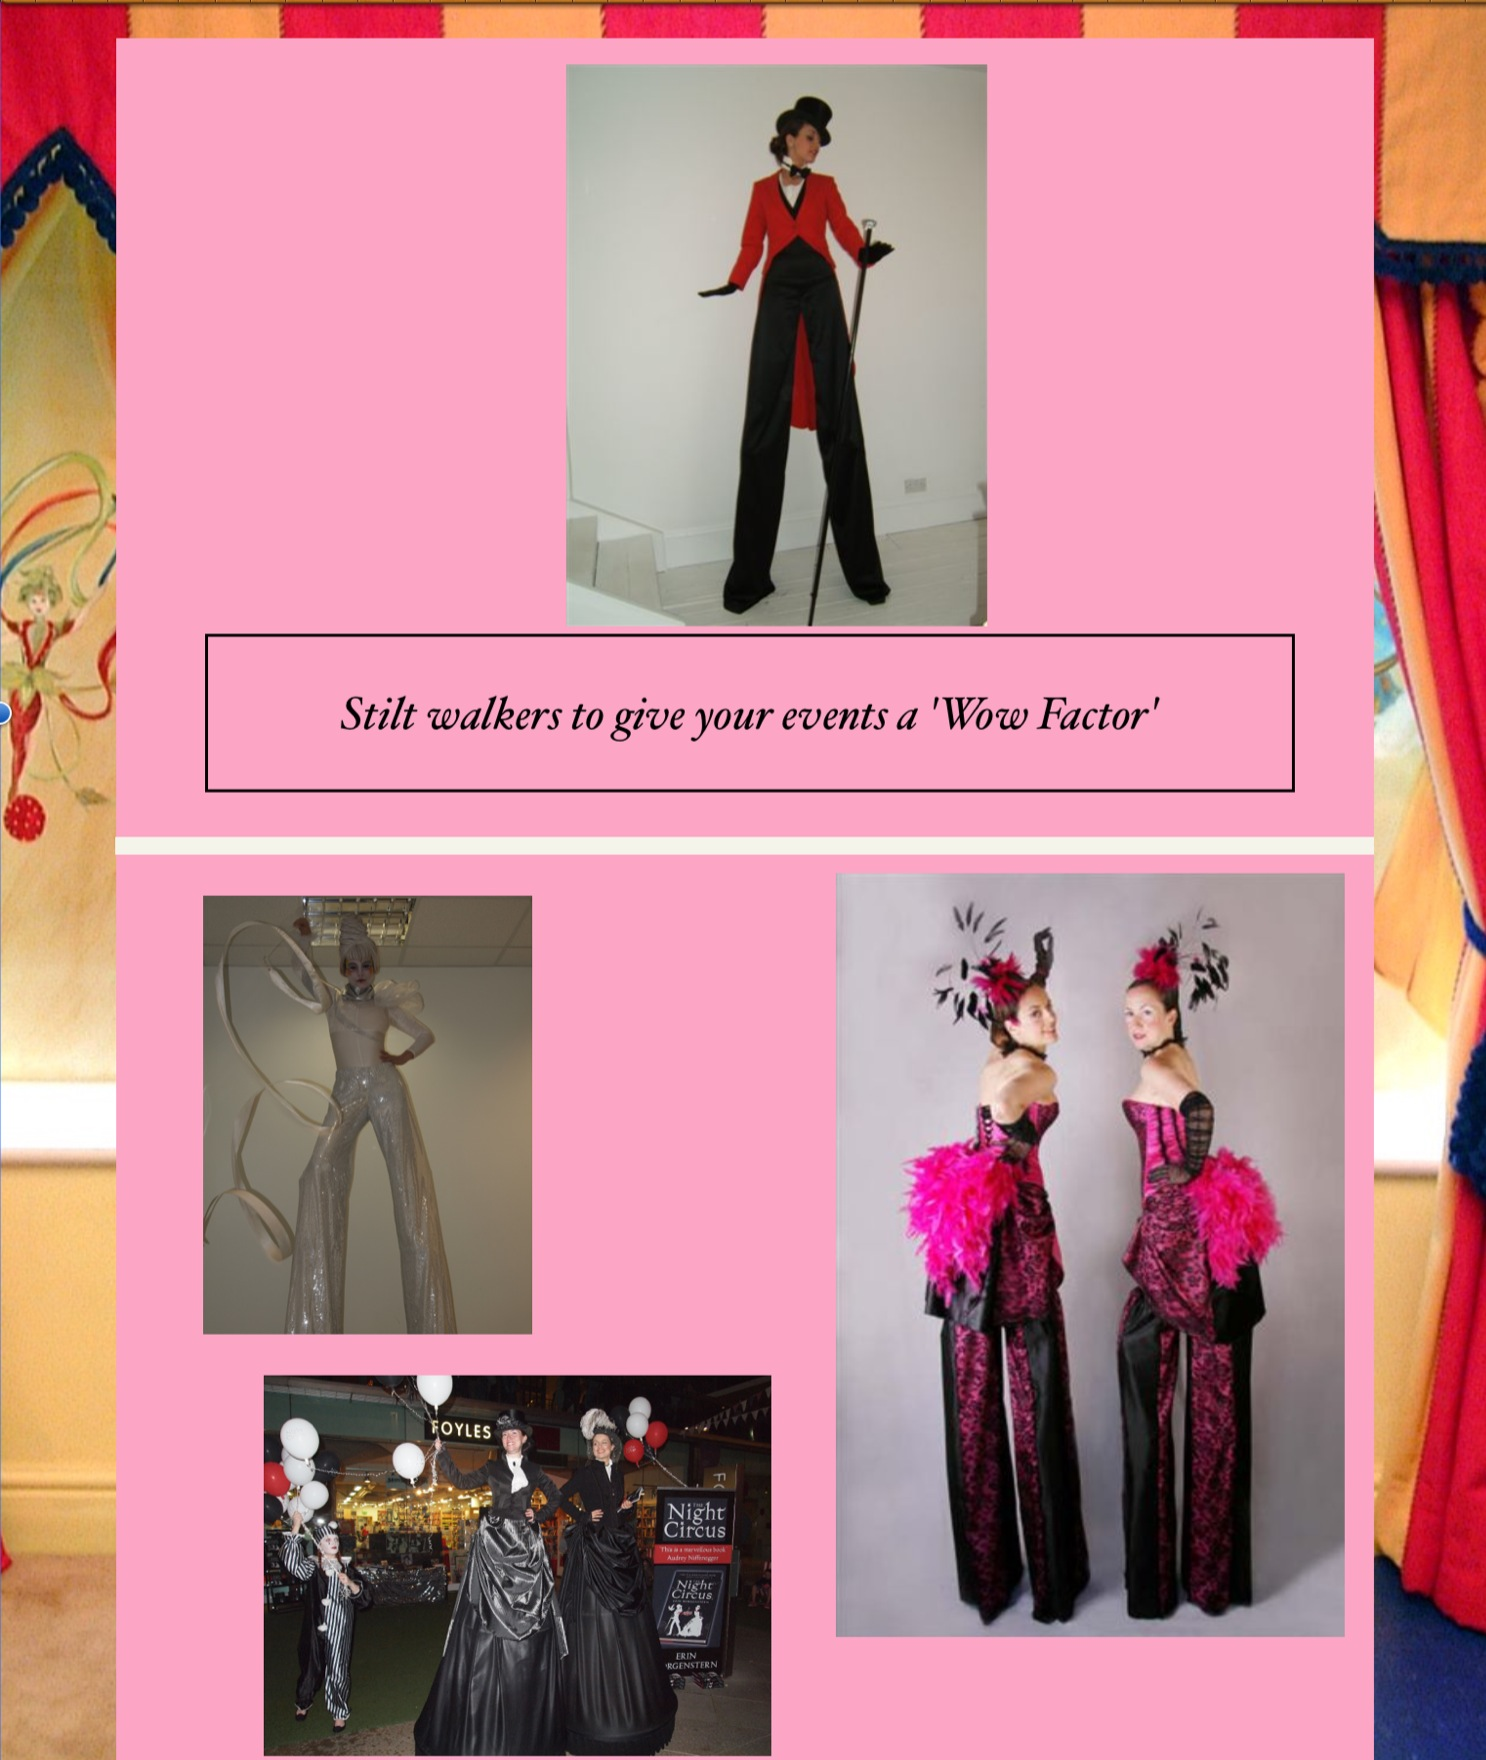 Stilt walkers to give your event the 'Wow Factor'